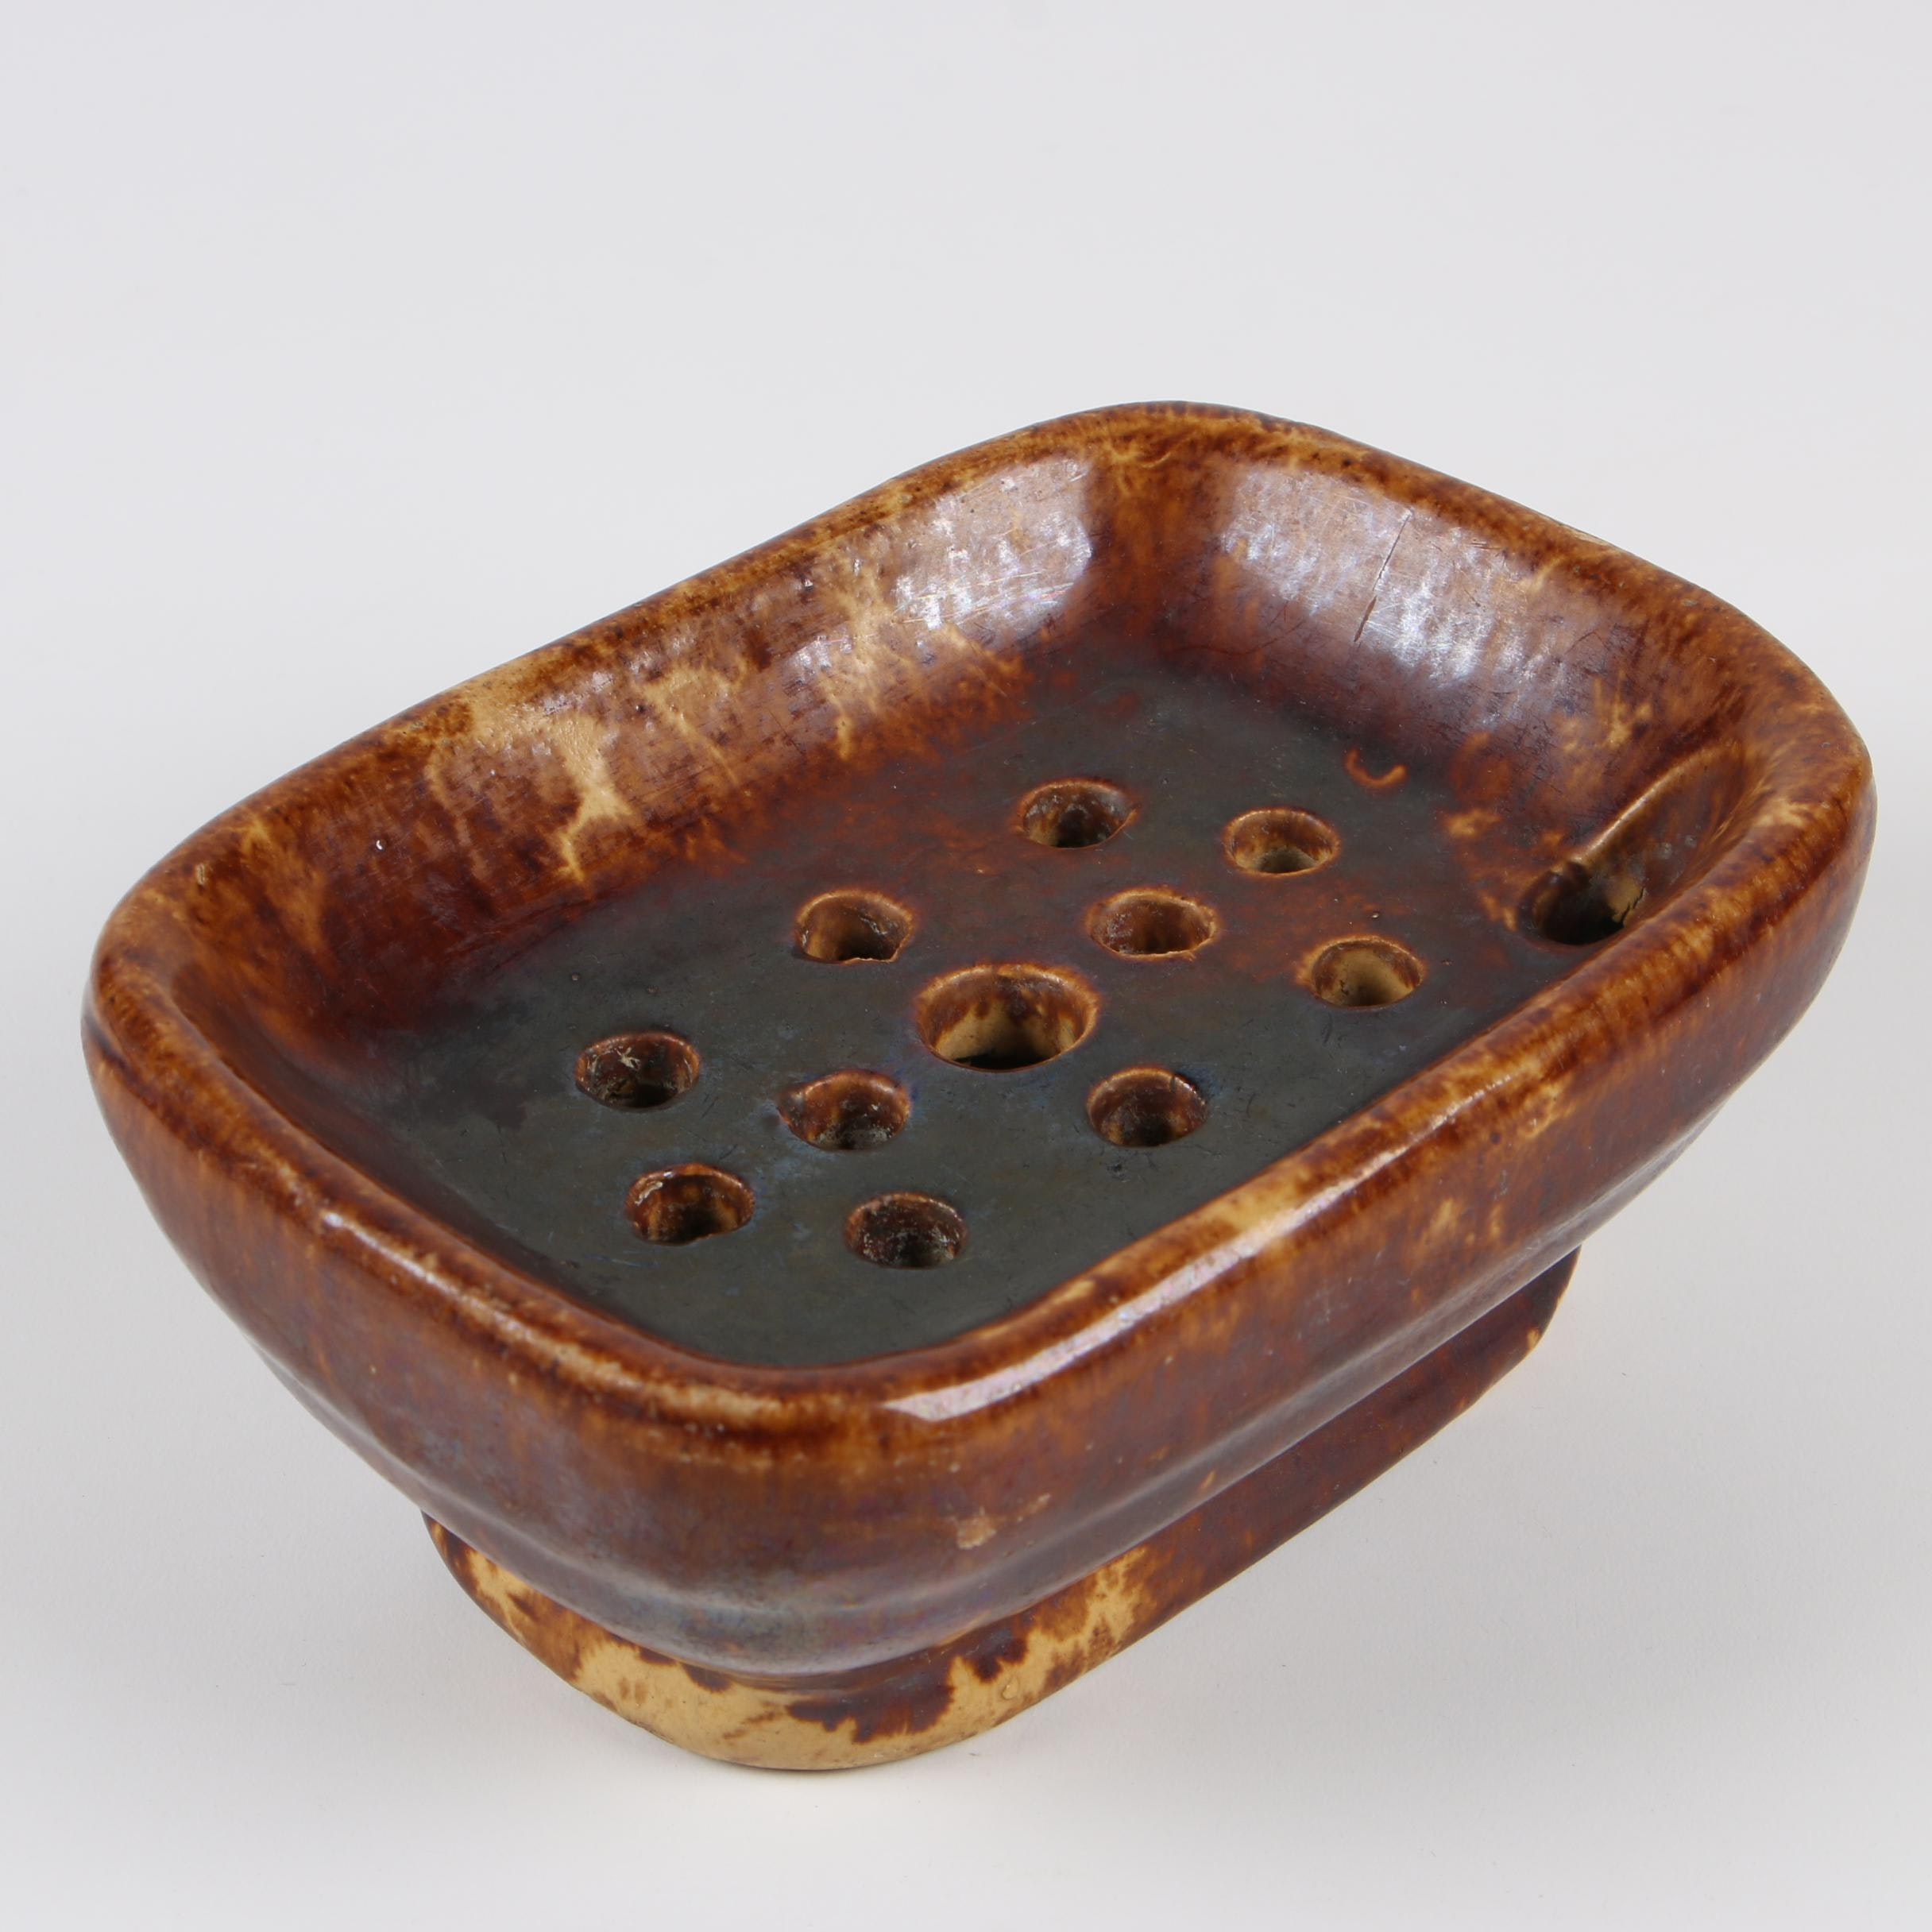 Rockingham Glazed Earthenware Soap Dish, Early 20th Century